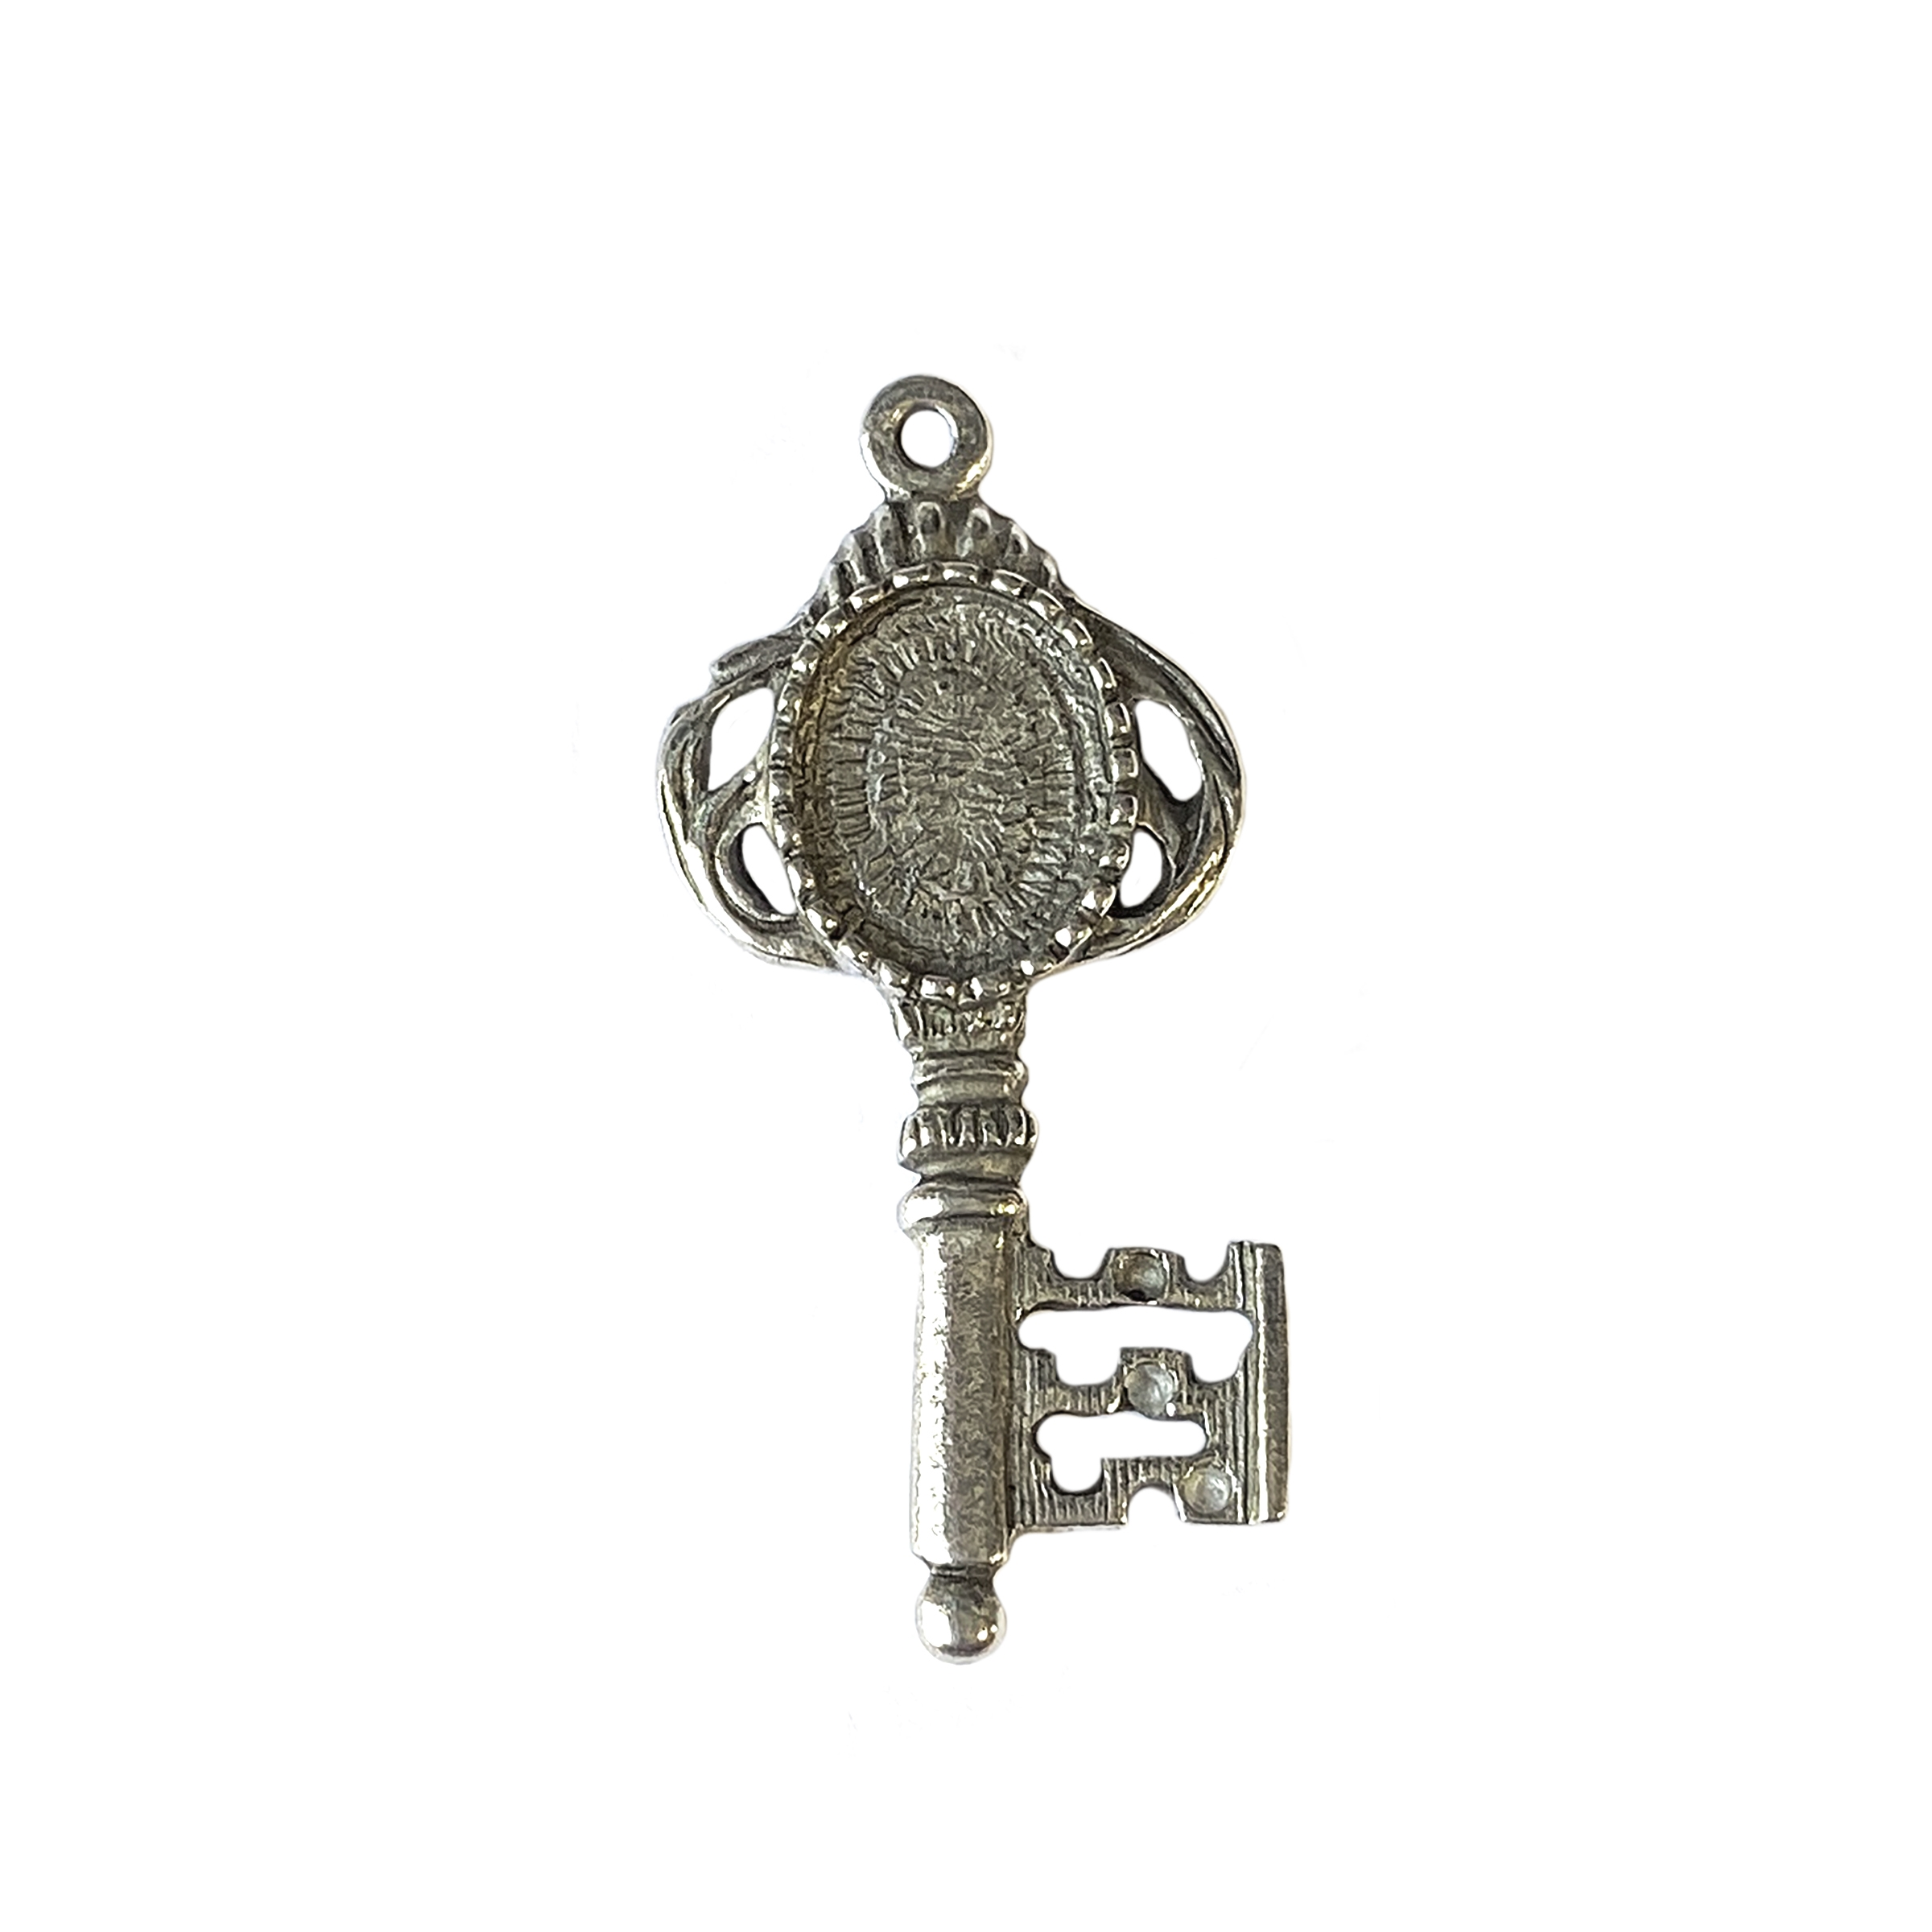 old silver pewter key, lead free pewter, 01025, key pendant, lead free pewter jewelry findings, vintage jewelry parts,  nickel free finish, B'sue by 1928, vintage jewelry findings, pewter jewelry parts, US made, 1928 Jewelry, pewter key